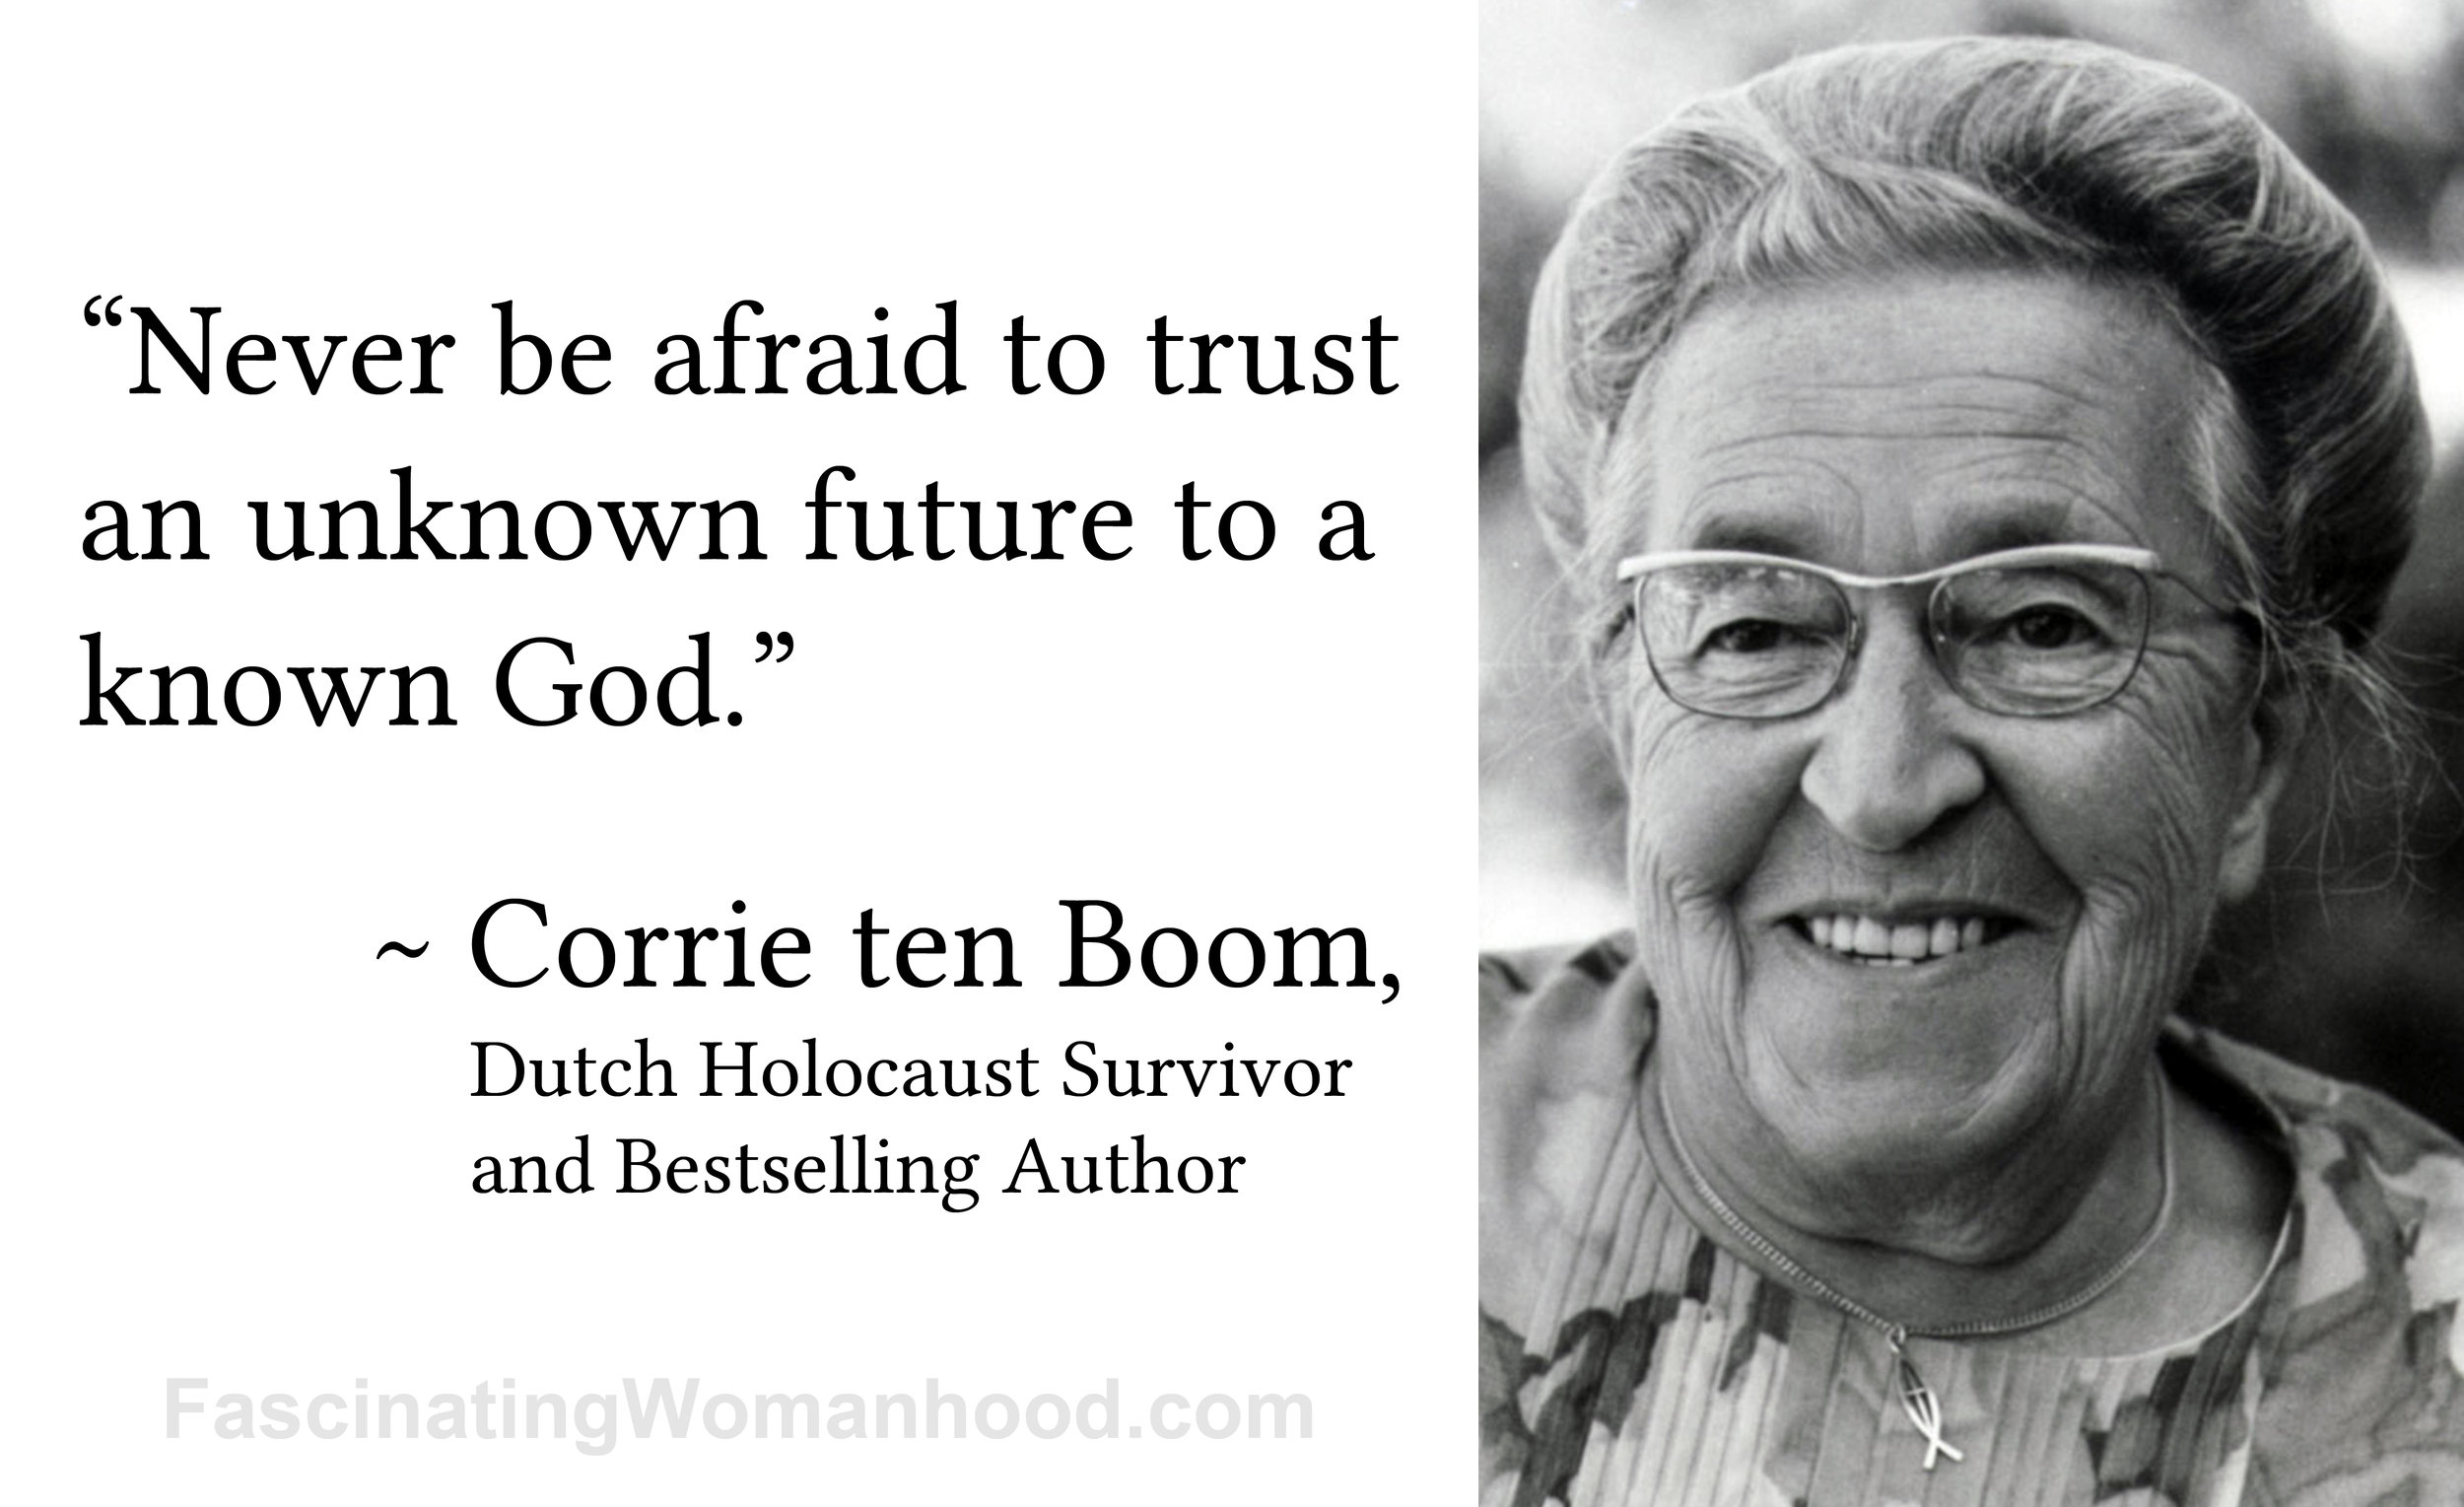 A Quote by Corrie ten Boom.jpg